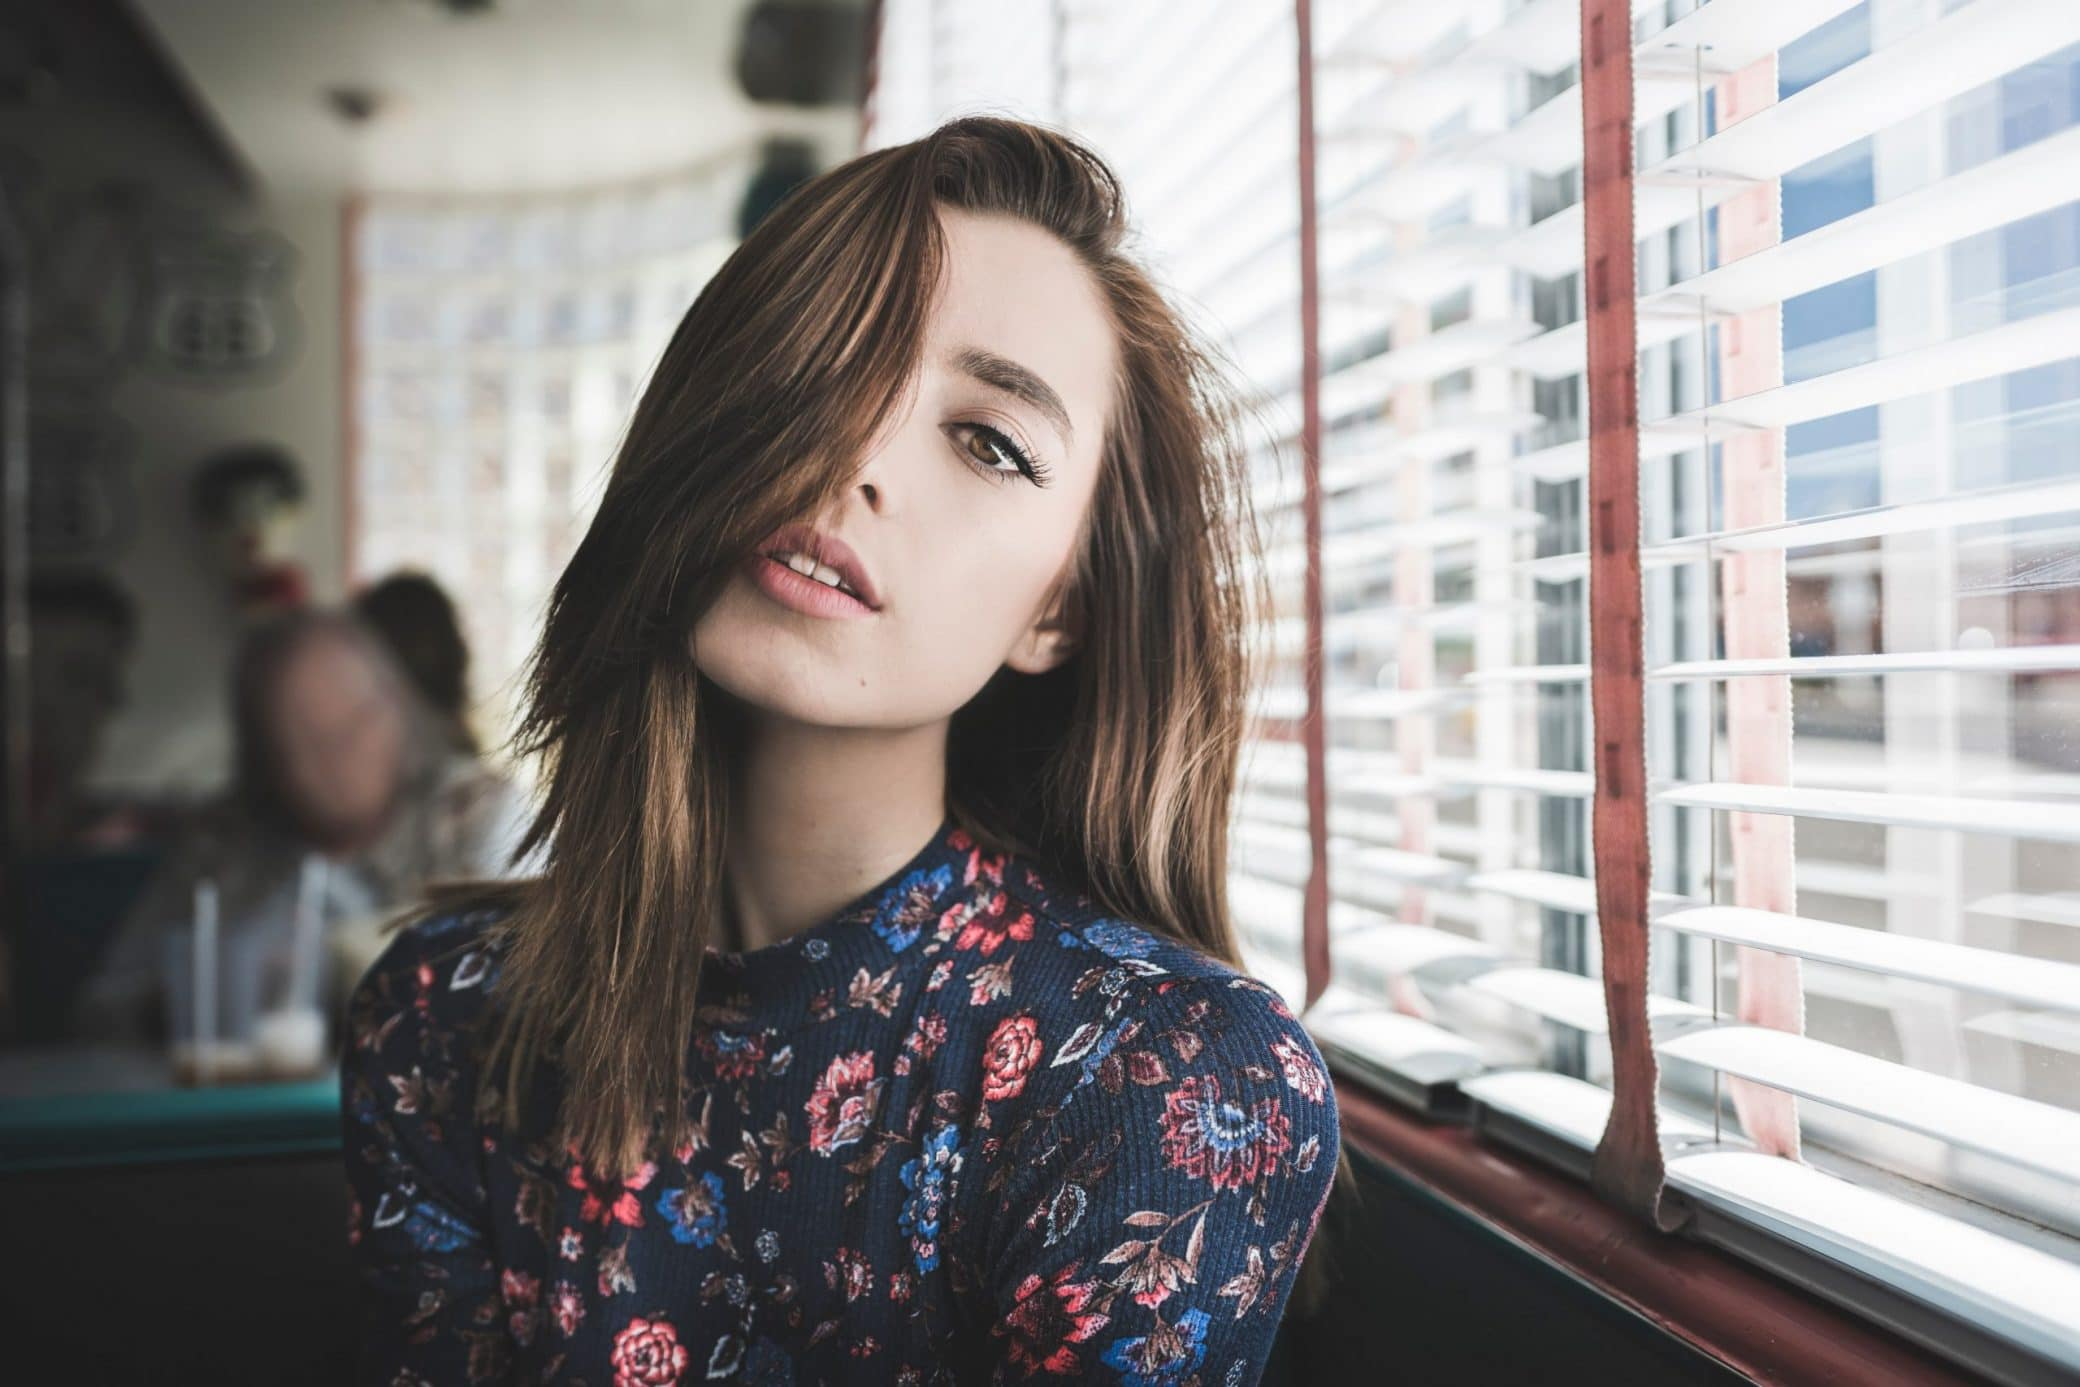 Beautiful Young Woman Sitting in a Diner posing for a portrait